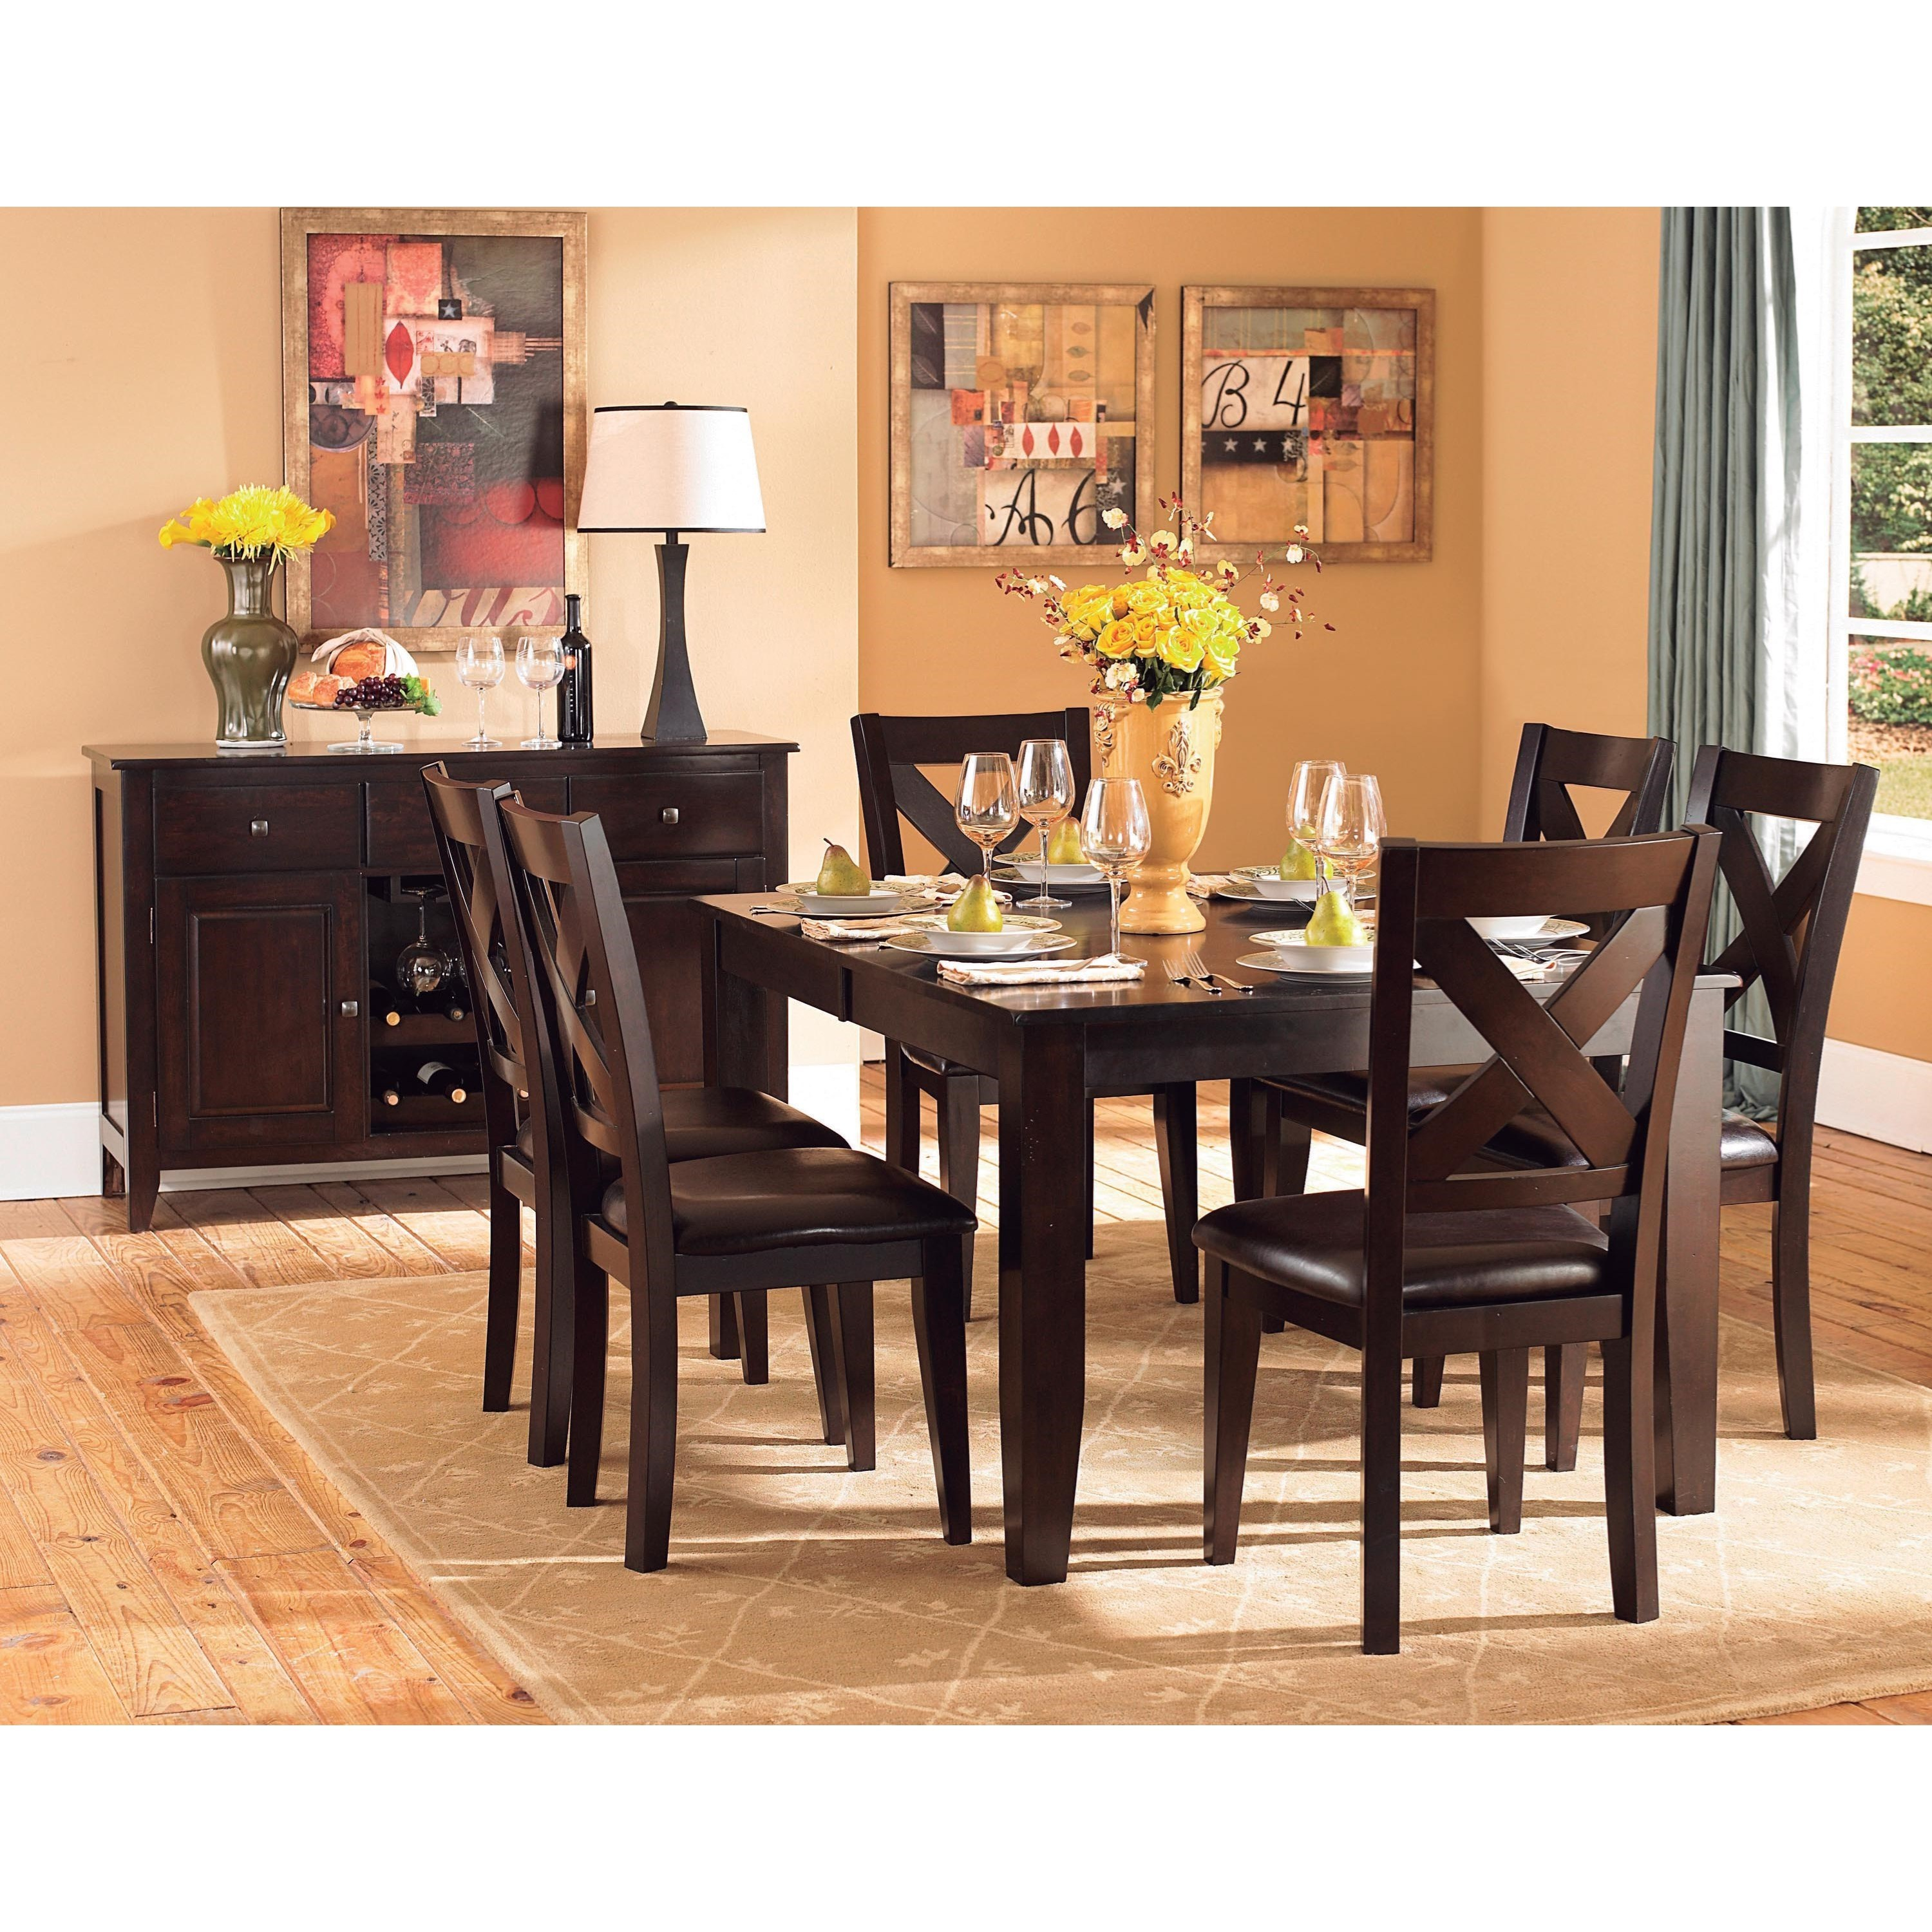 City Furniture Dining Room: Homelegance Crown Point Transitional Formal Dining Room